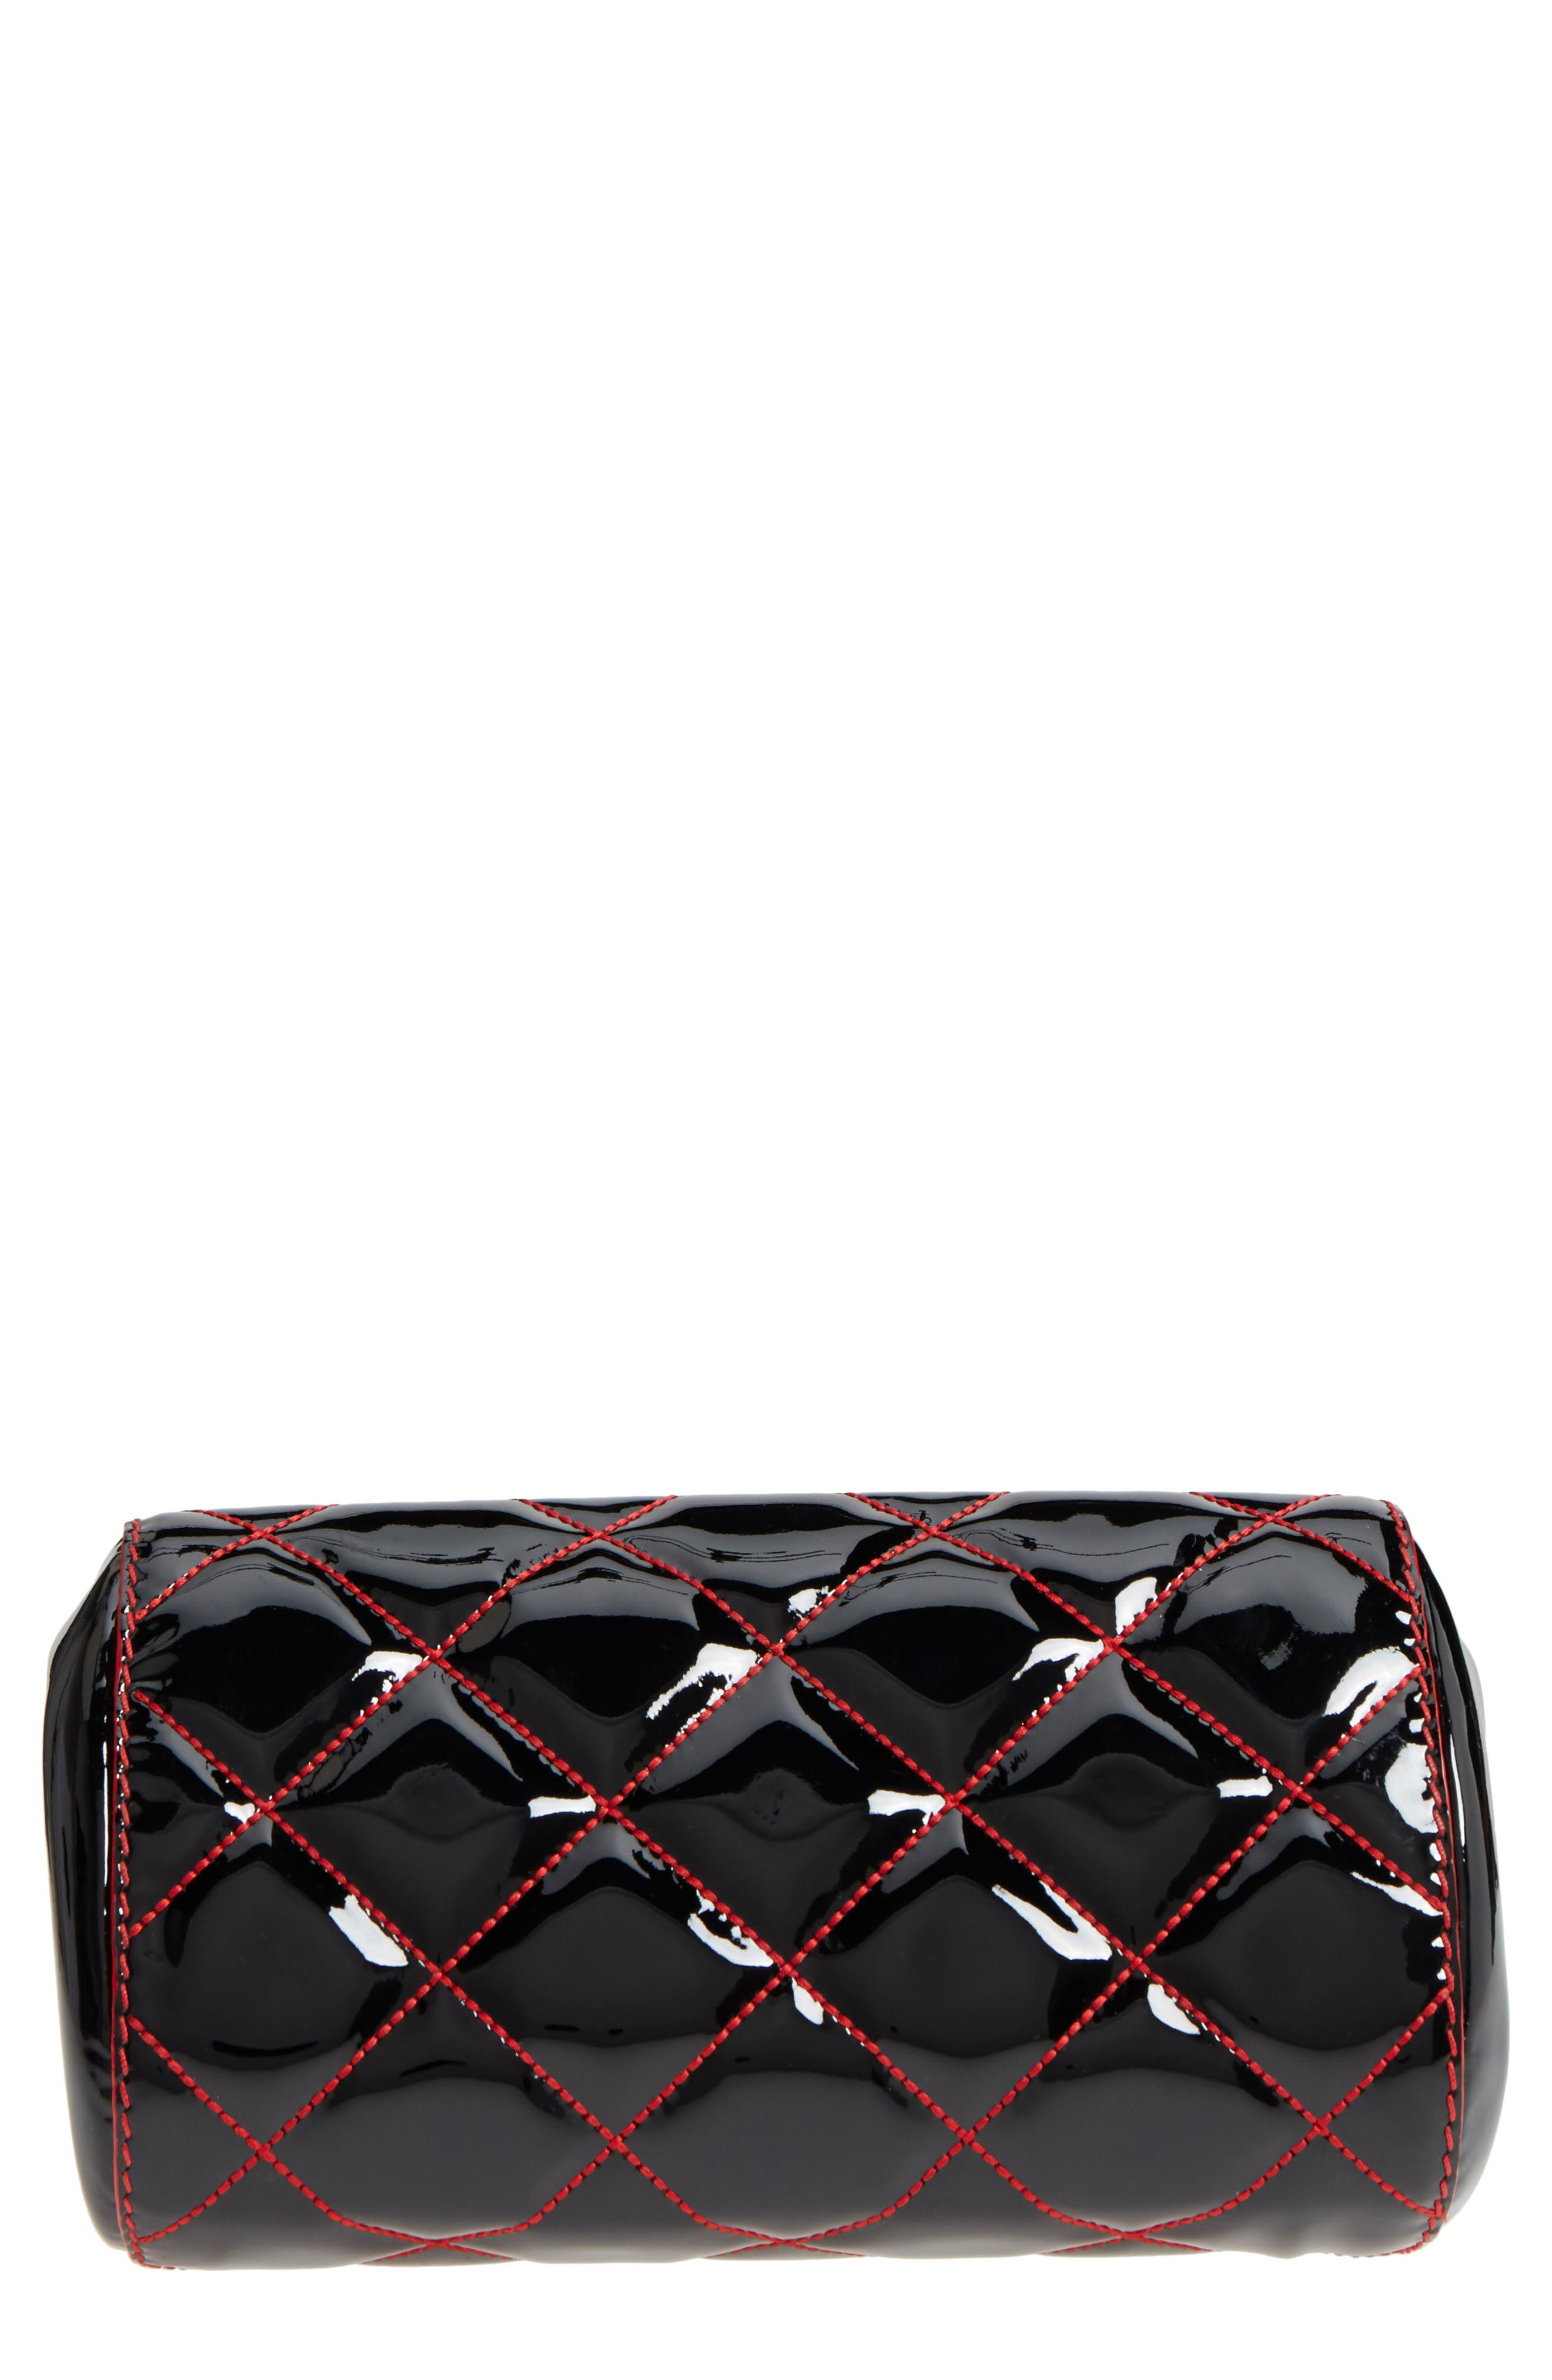 Quilted Patent Leather Frame Clutch,                             Alternate thumbnail 7, color,                             Black/ Lust Red